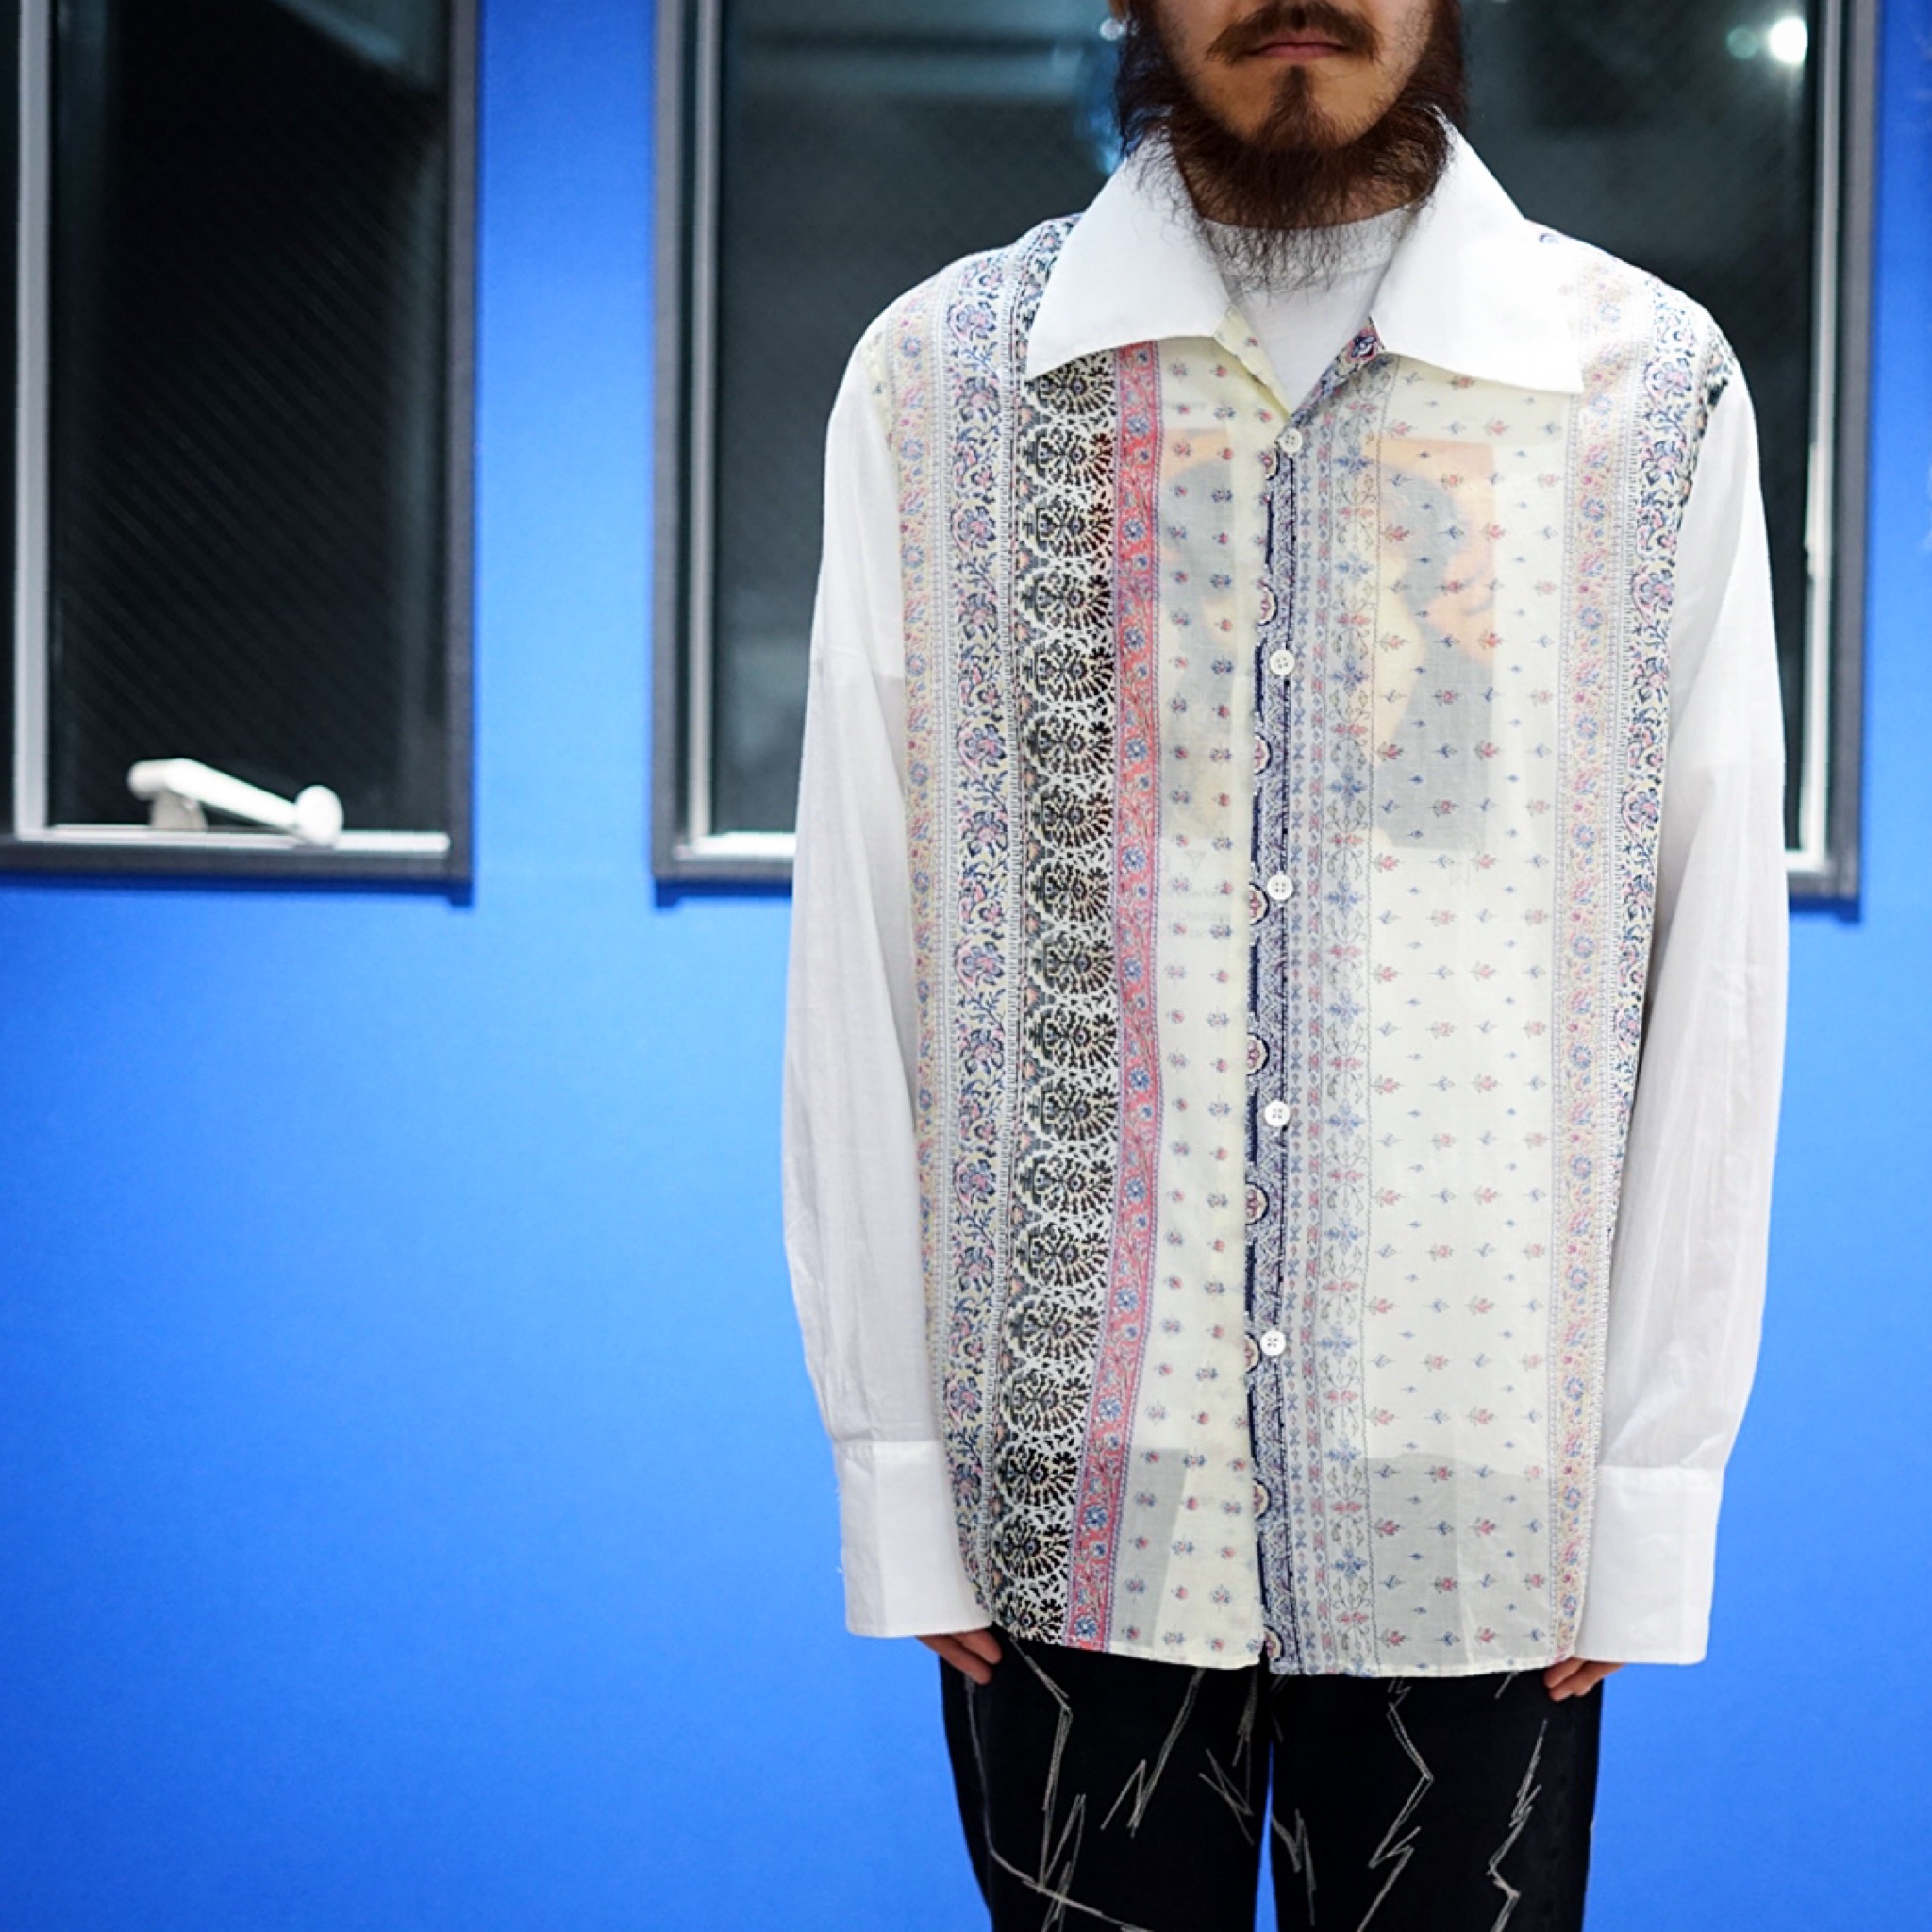 OUR LEGACY(アワーレガシー)20SS MAIN COLLECTION DELIVERY-Amanojak ...